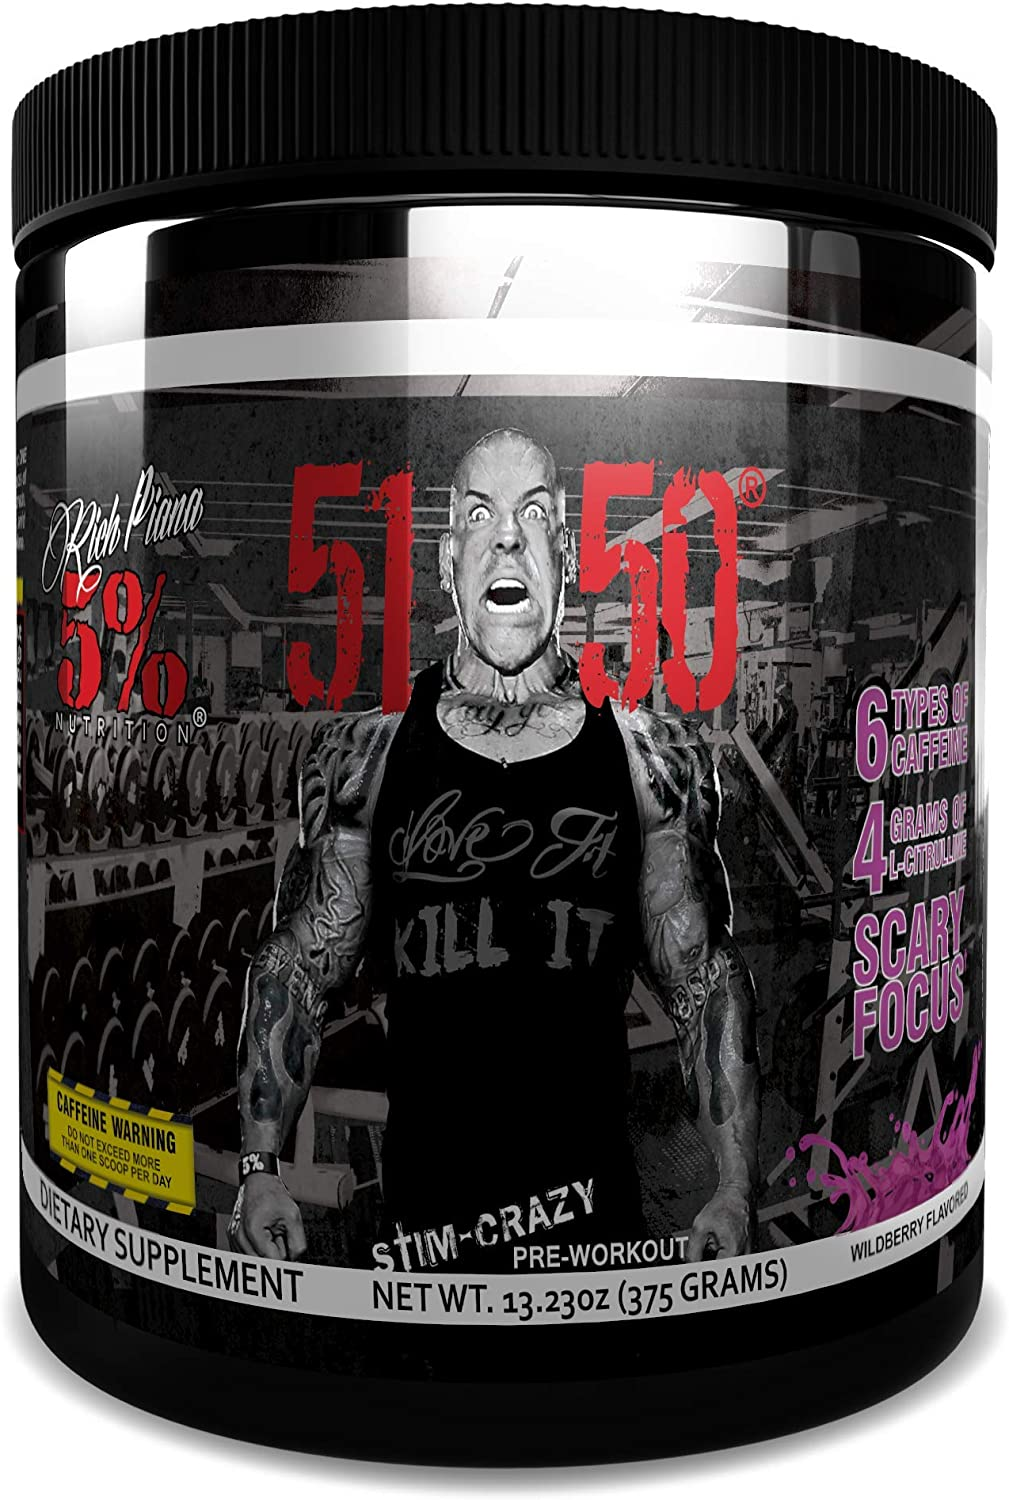 5150 pre-workout supplement